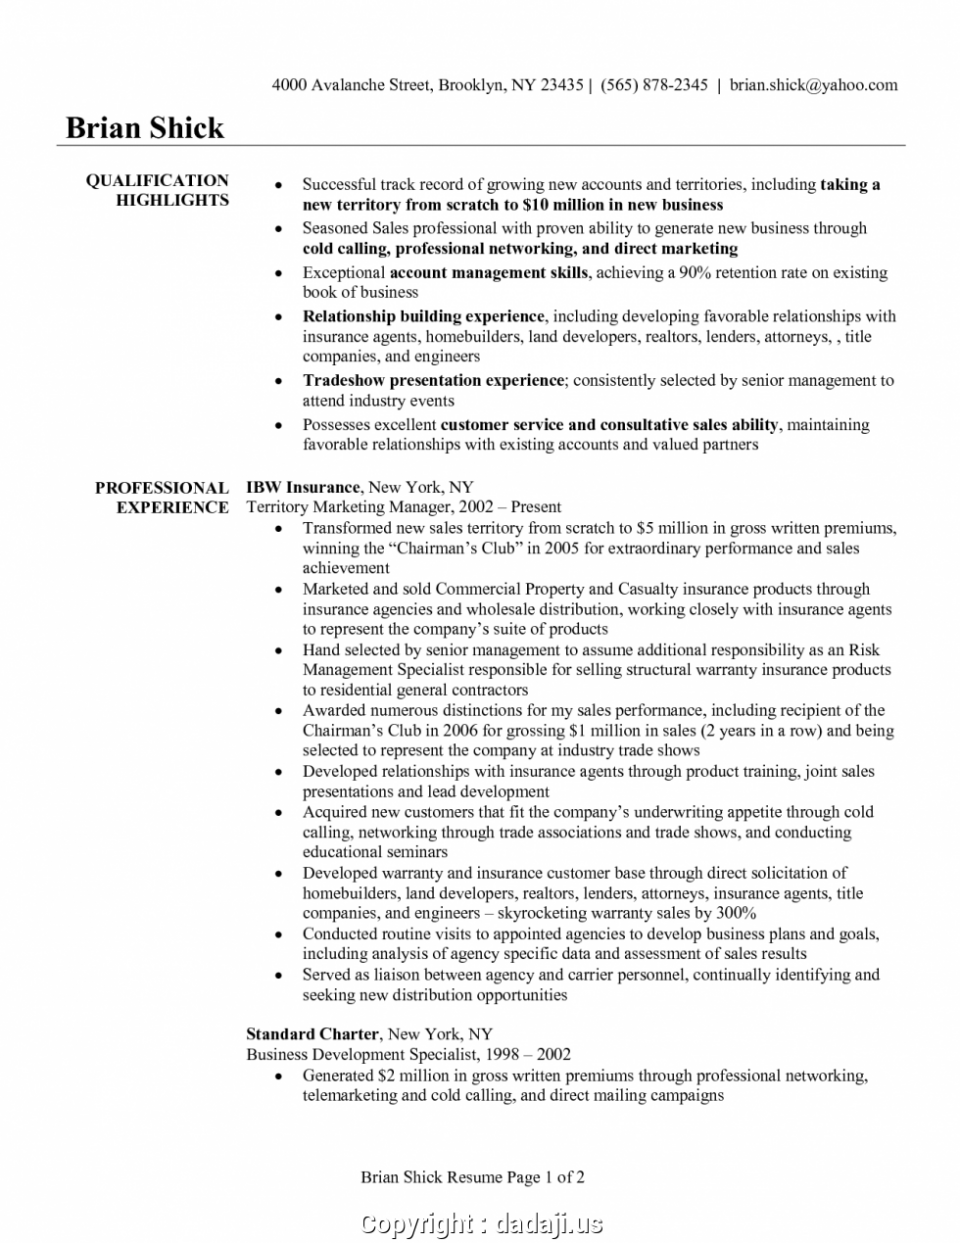 Account Manager Job Description For Resume Lovely Free Insurance